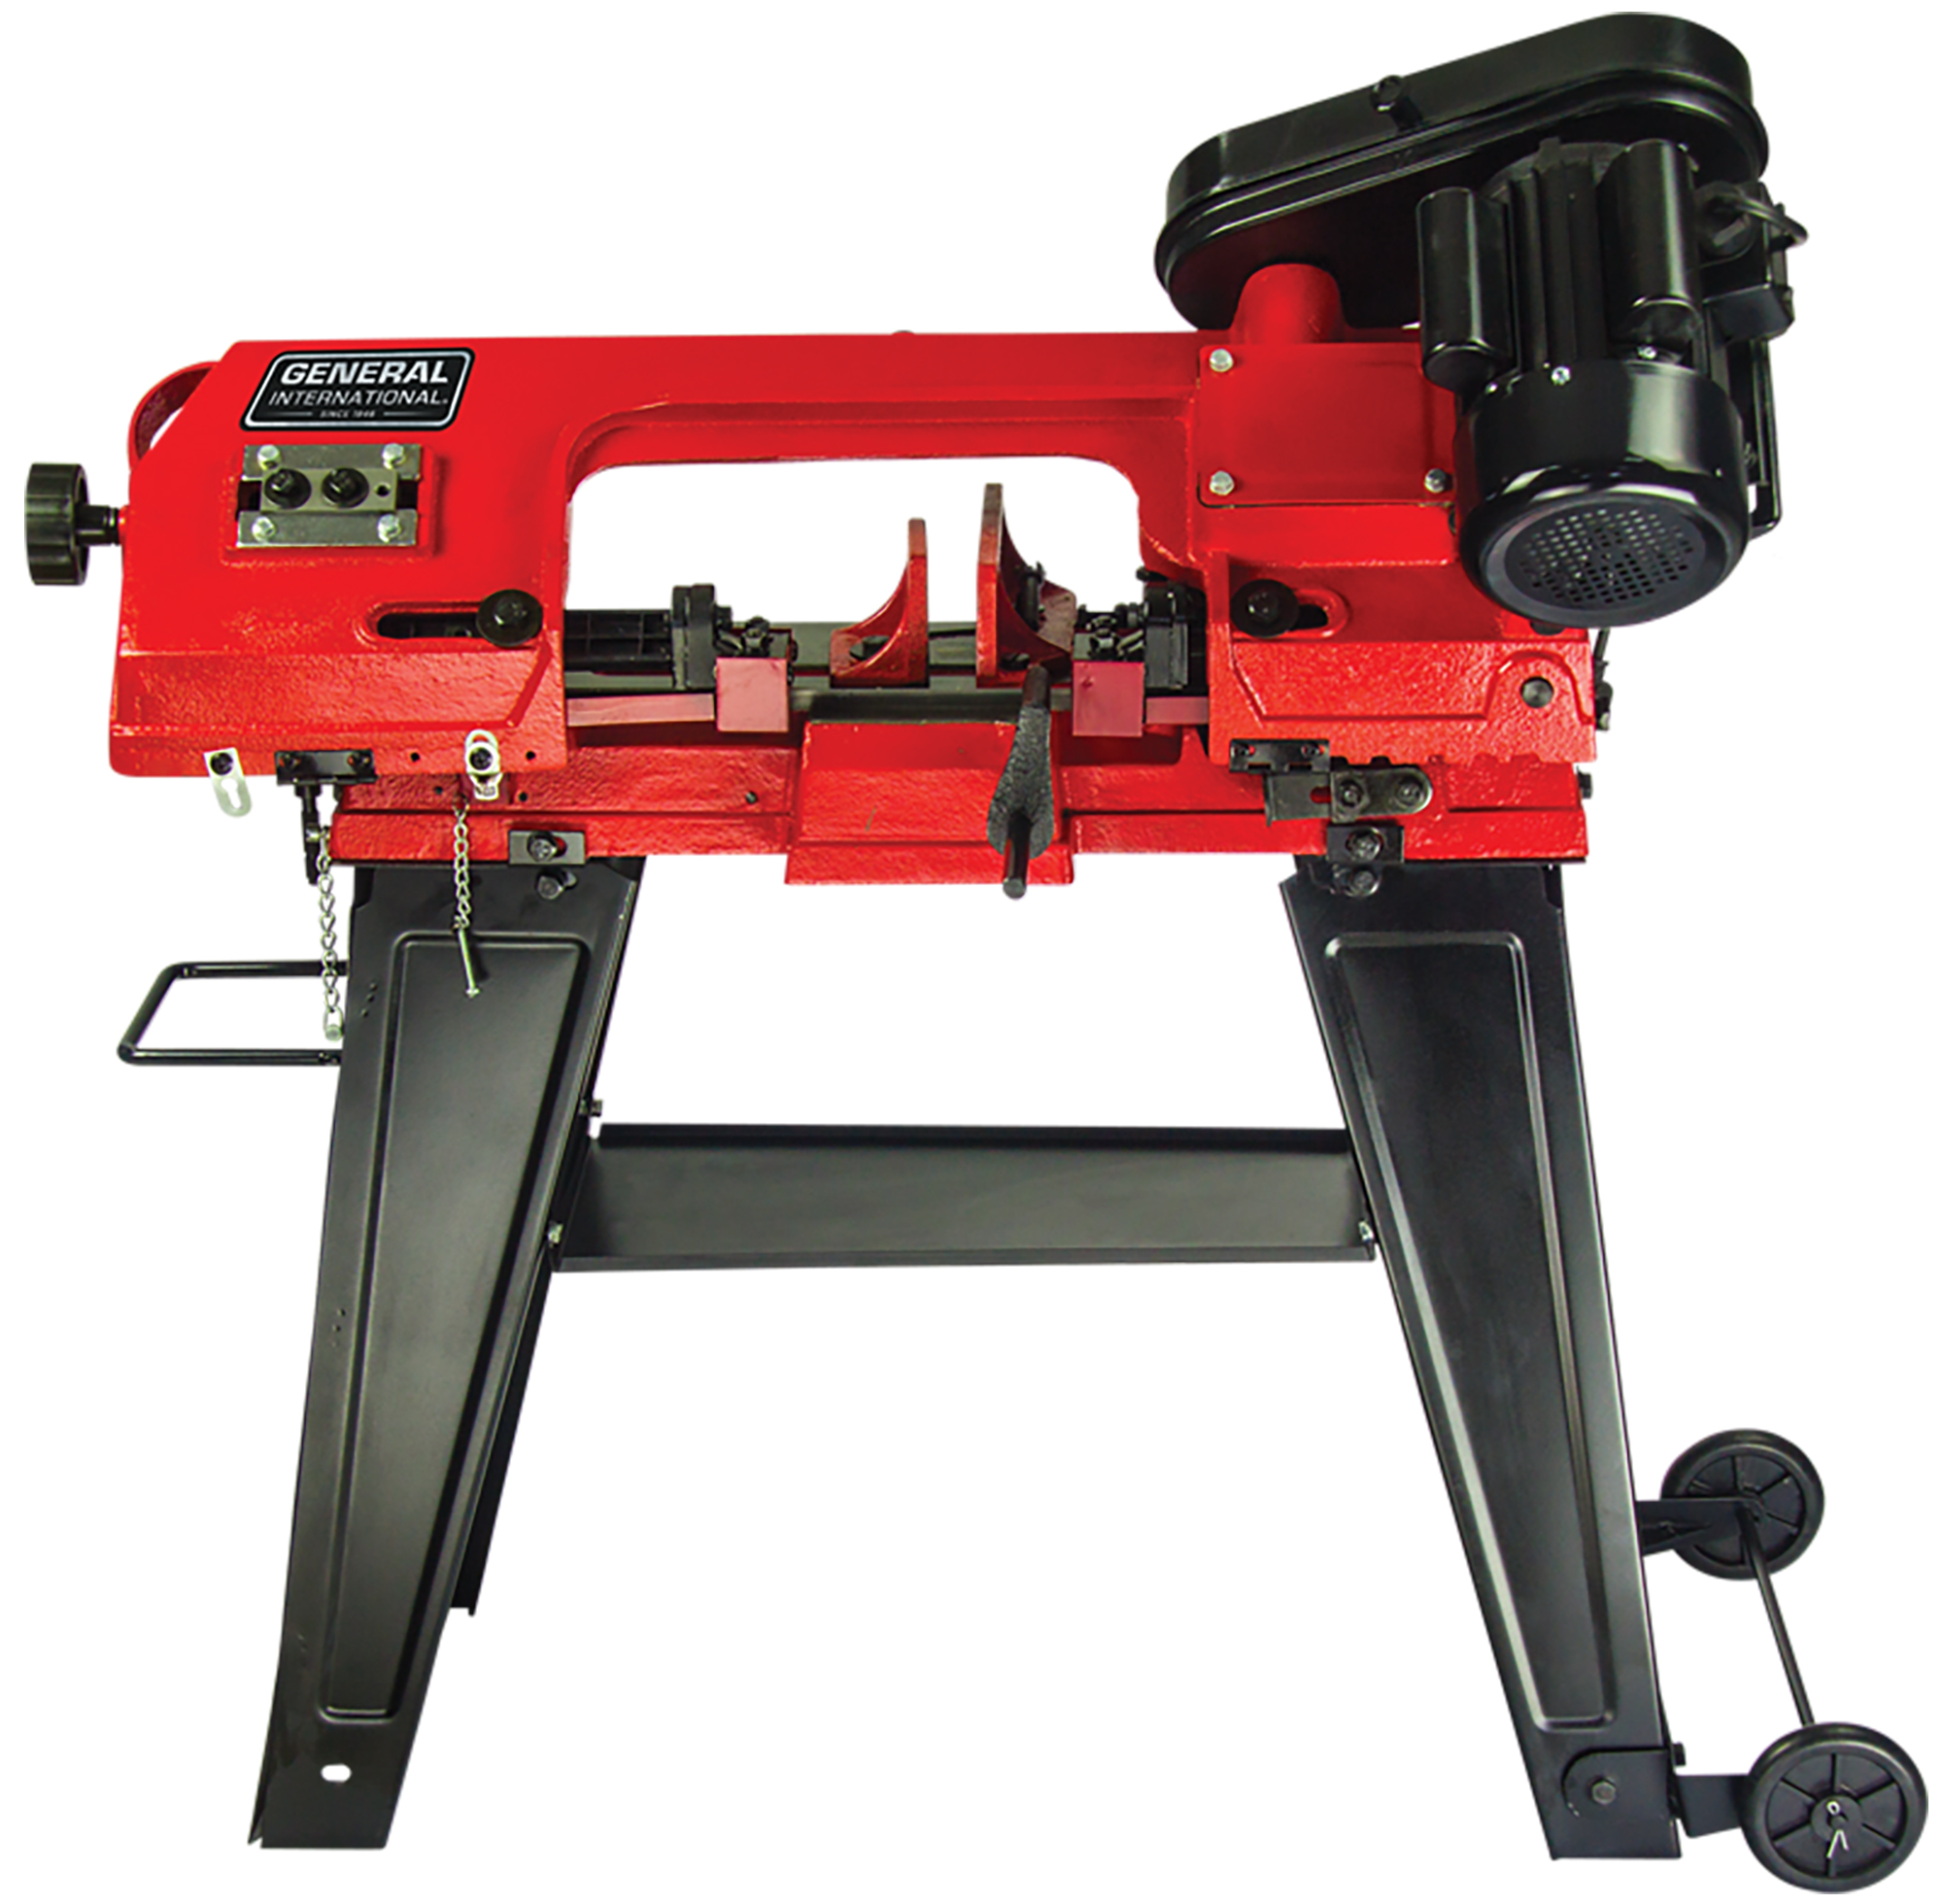 General International 4 5 Quot 5a Metal Cutting Band Saw With